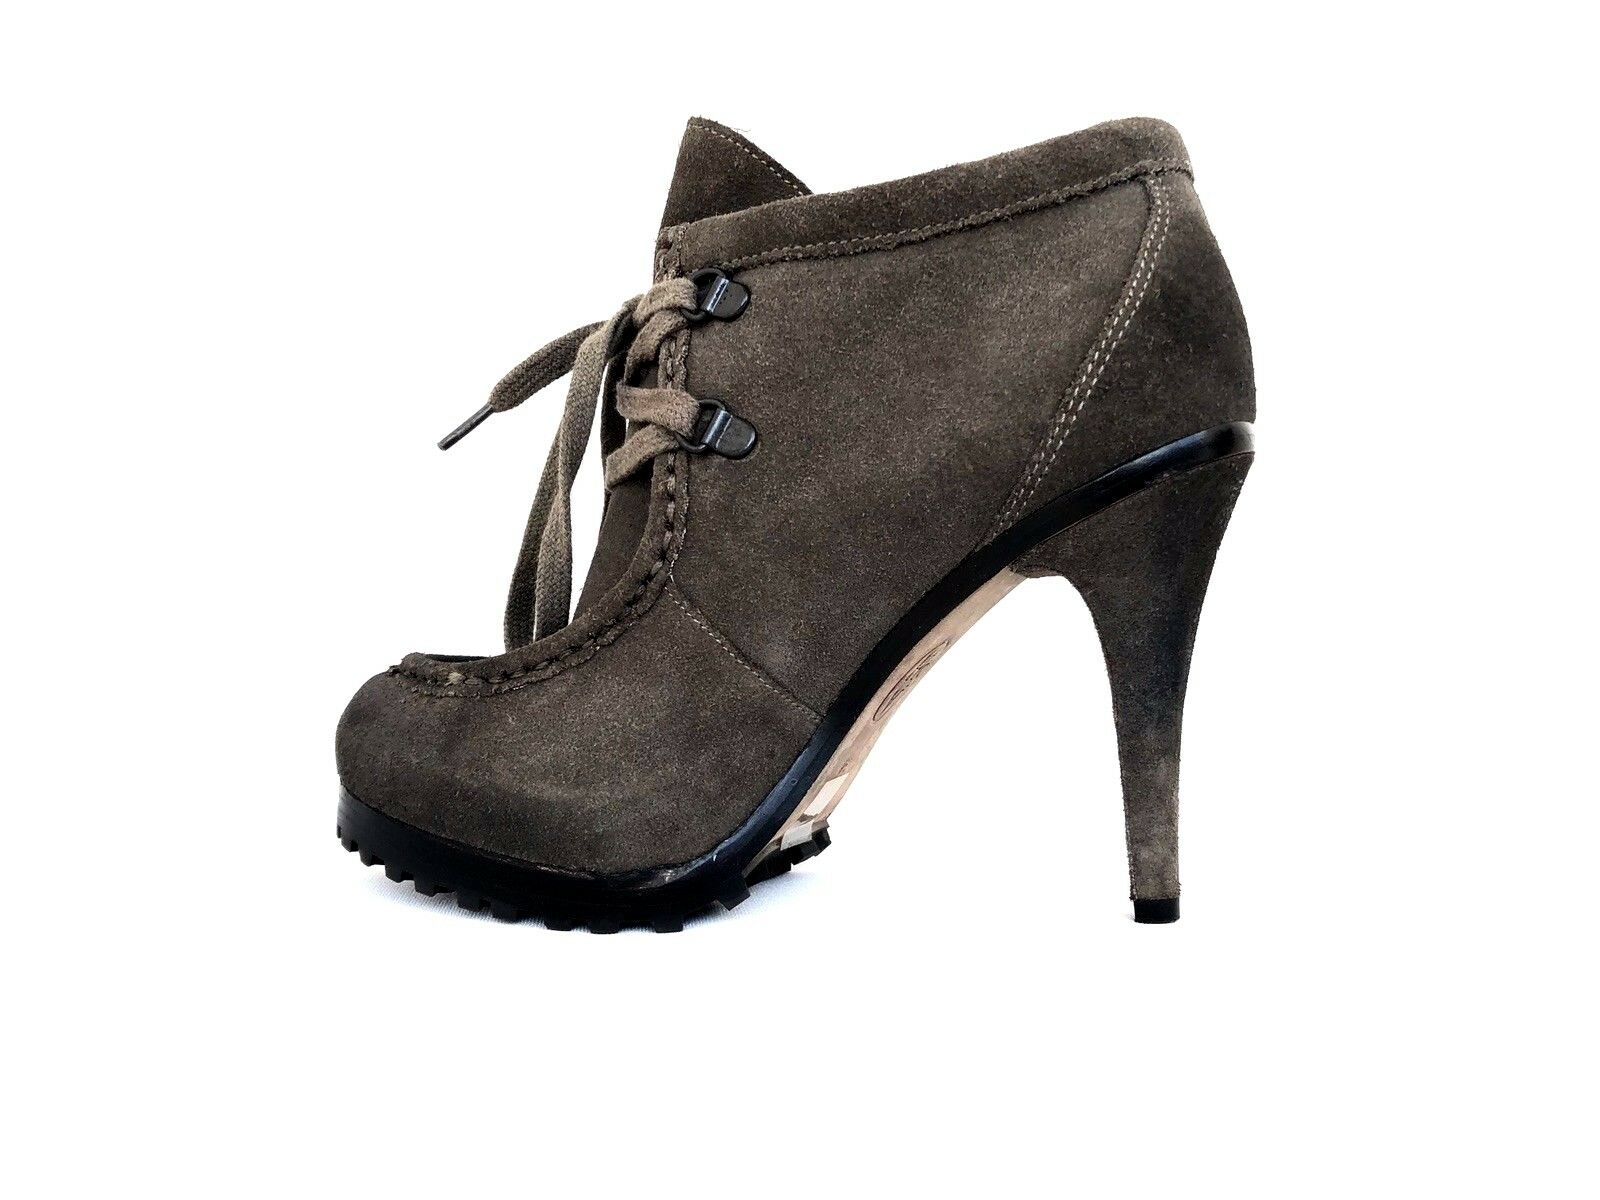 Ash Poppy Heels Suede Leather Lace Up Womens Ankle Booties Size 36  US 6